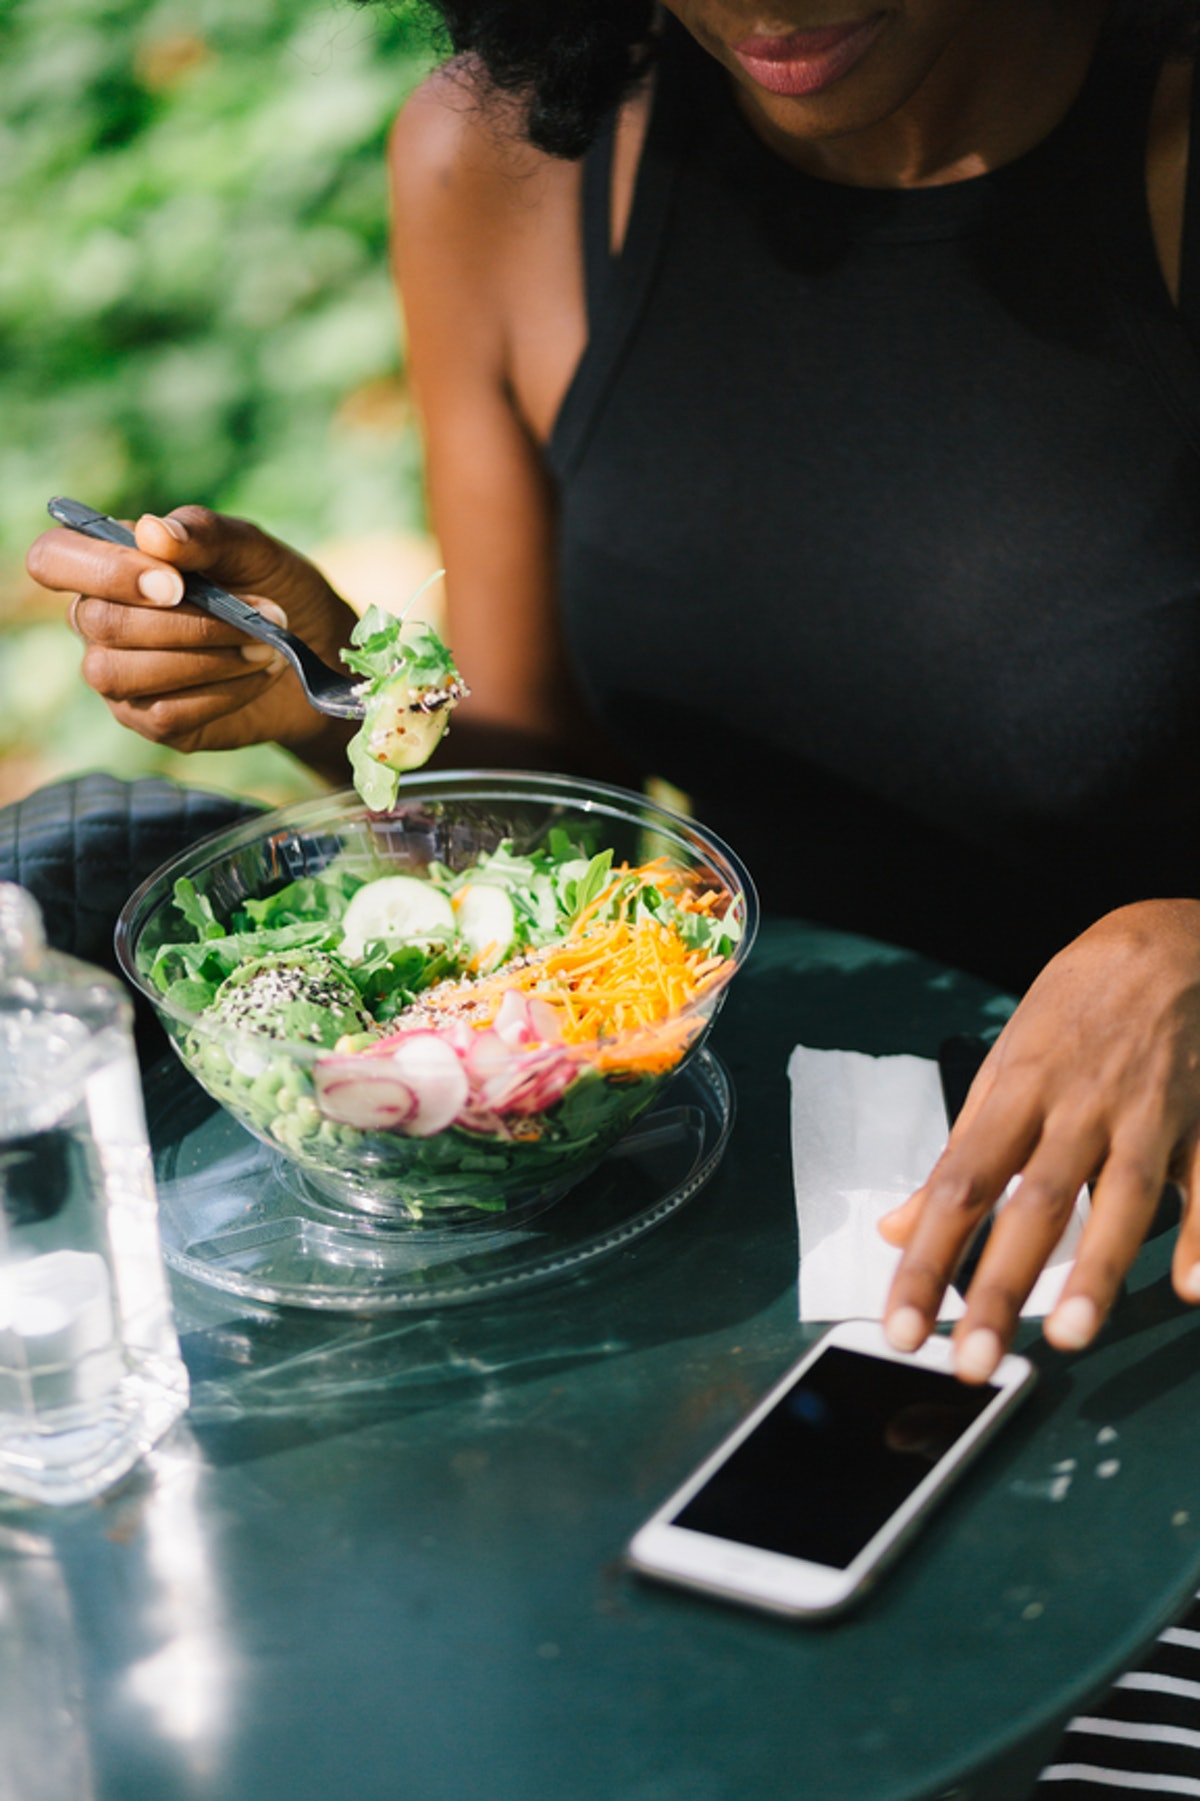 5 Benefits Of The Ketogenic Diet That Have Absolutely Nothing To Do With Weight Loss